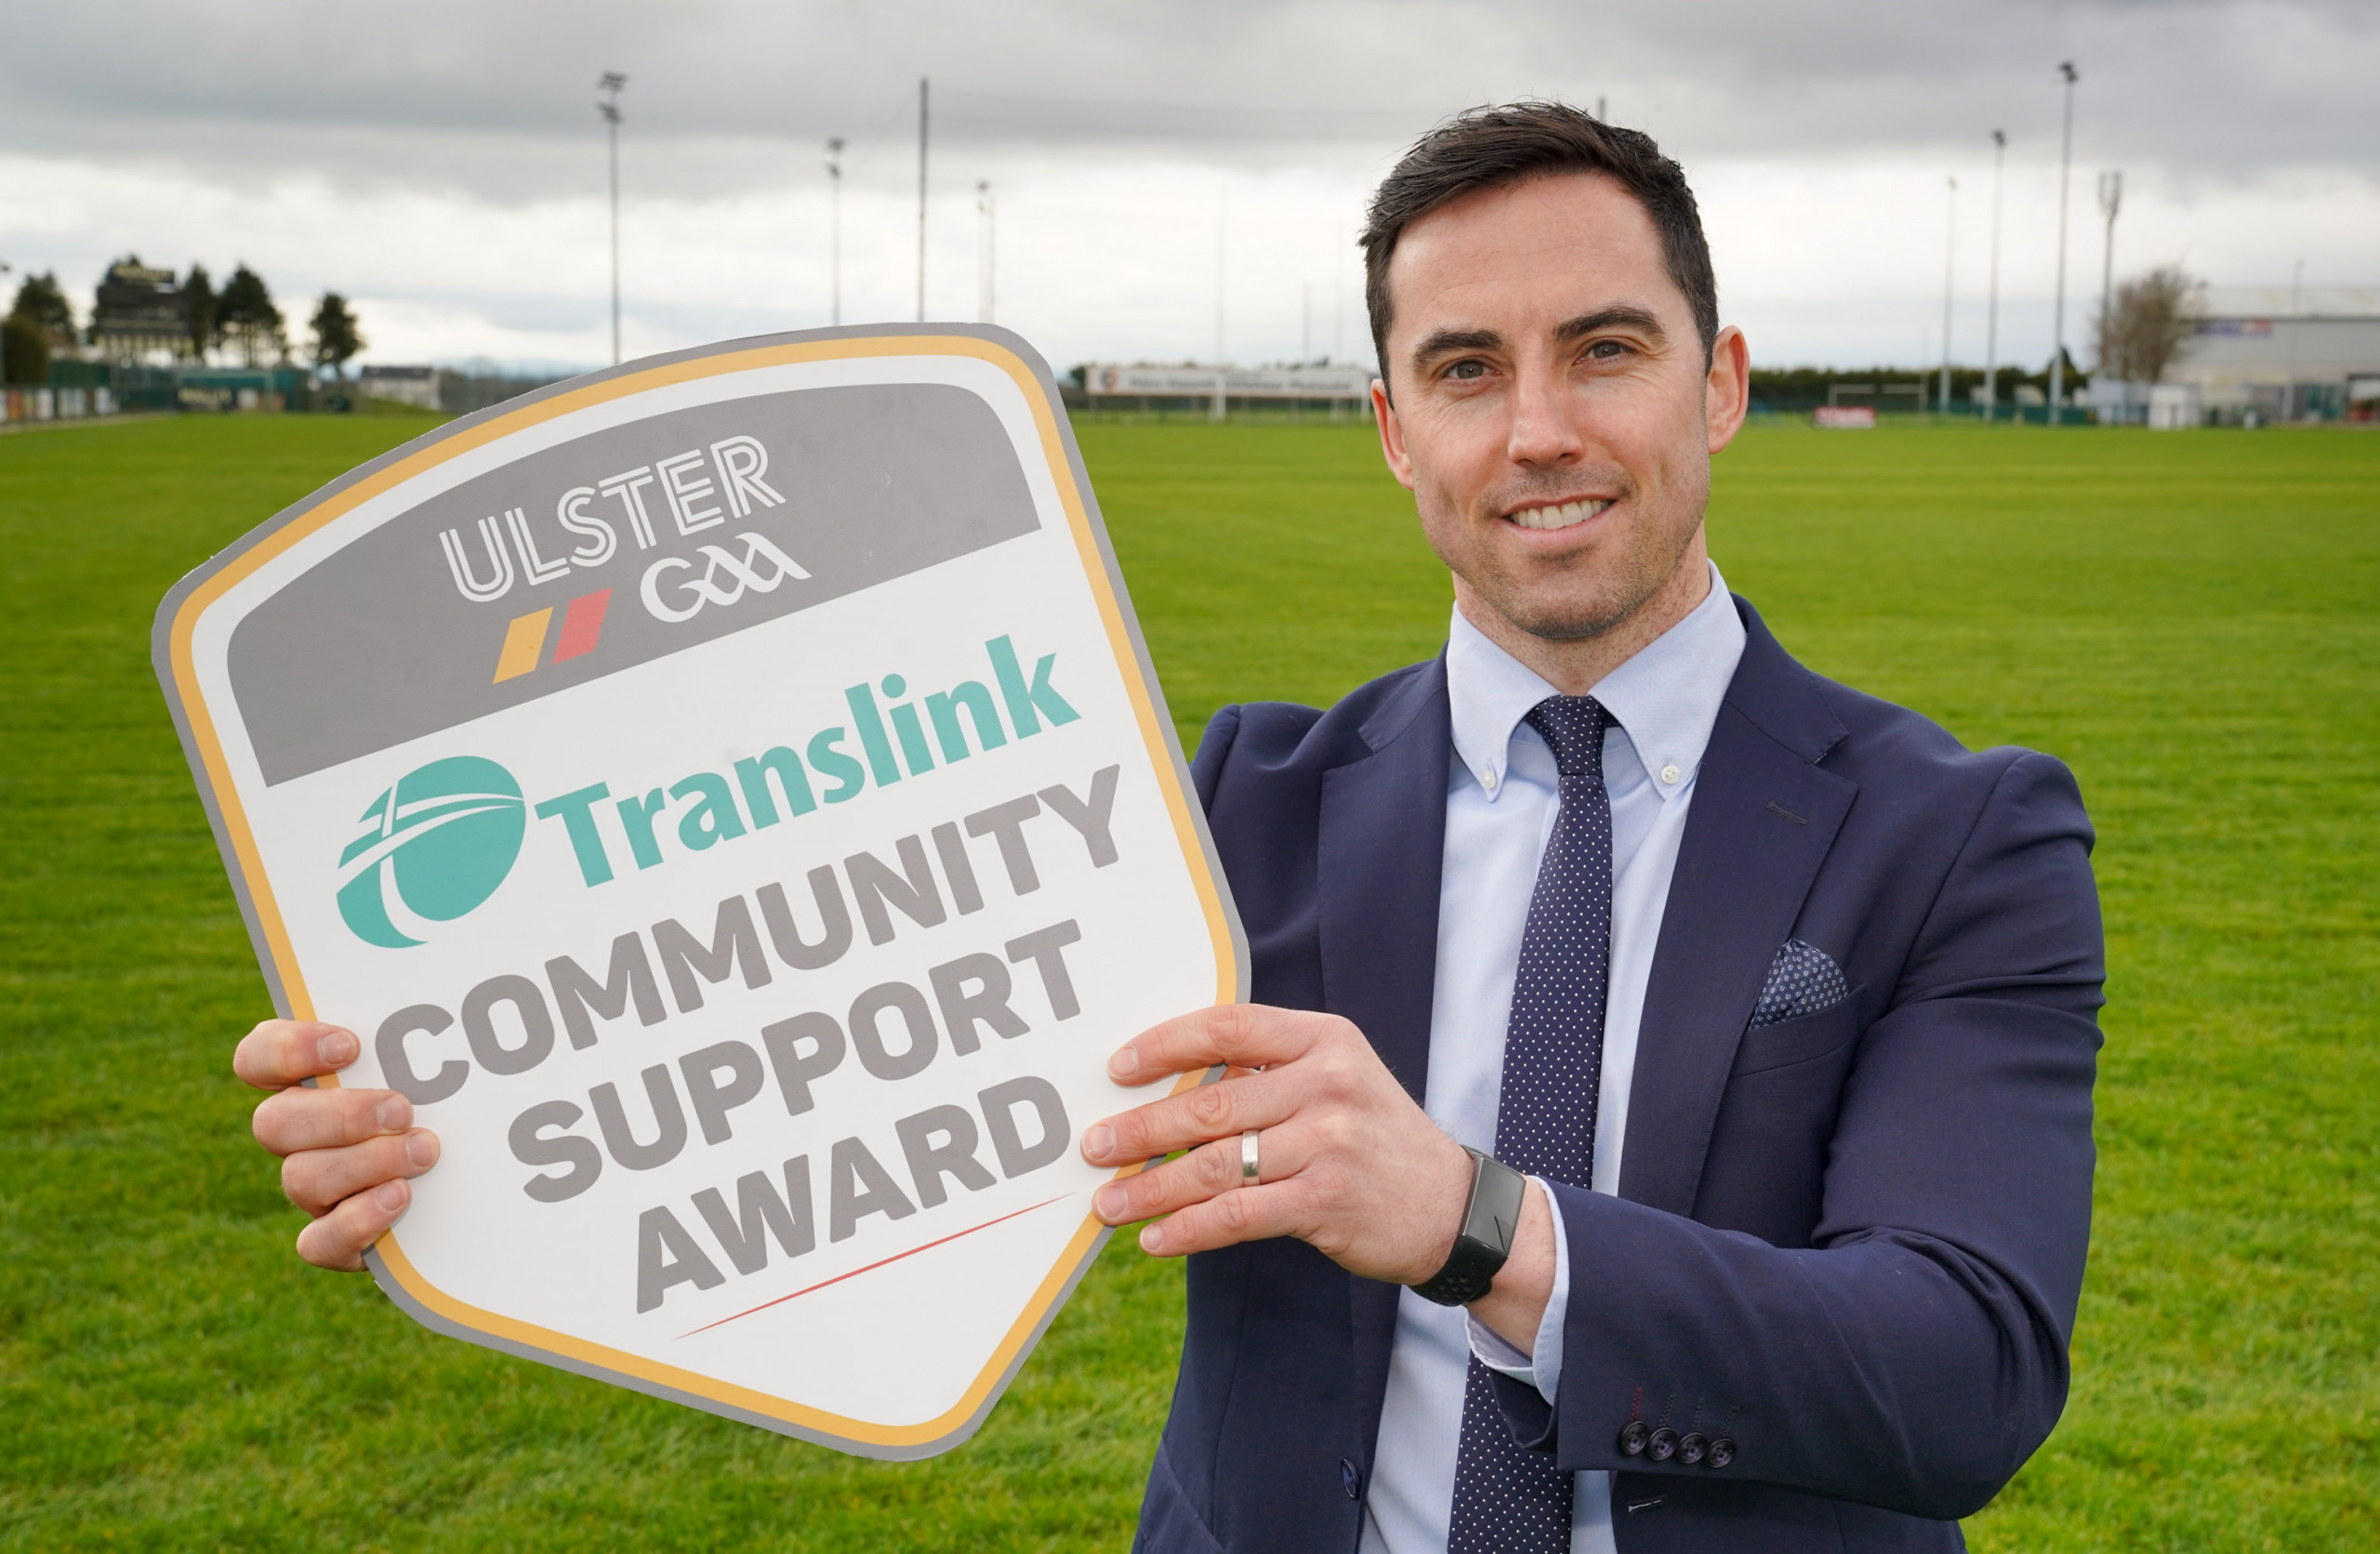 Ulster GAA and Translink launch Community Support Award for Clubs